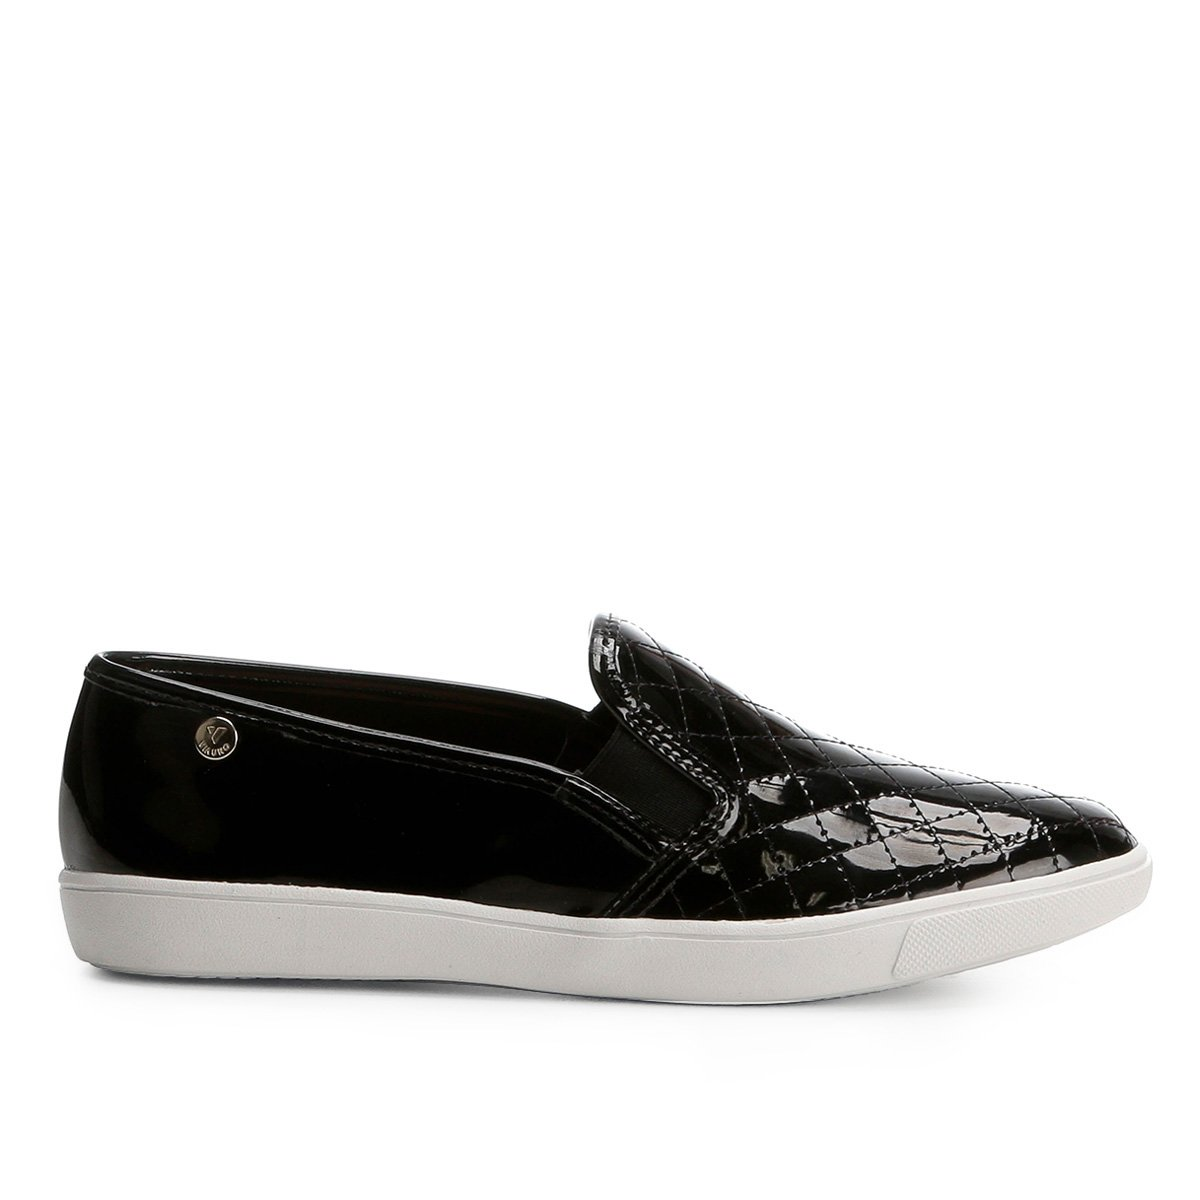 Via Slip On Slip Matelassê Uno Feminino On Preto qxAw5vEtw